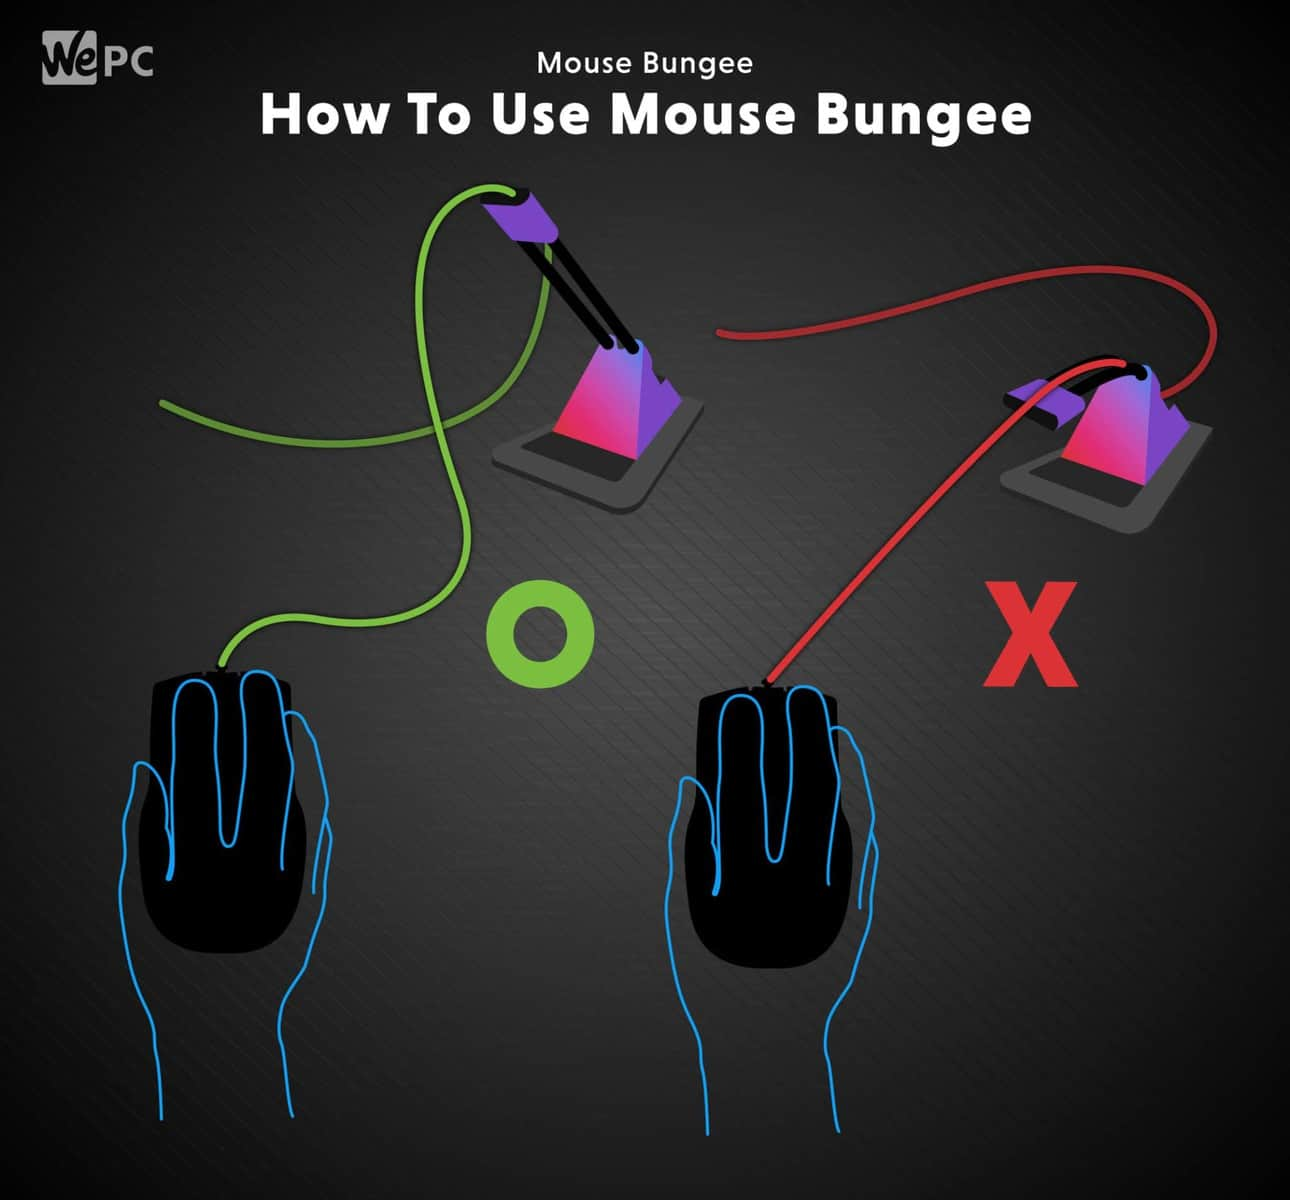 How To Use Mouse Bungee